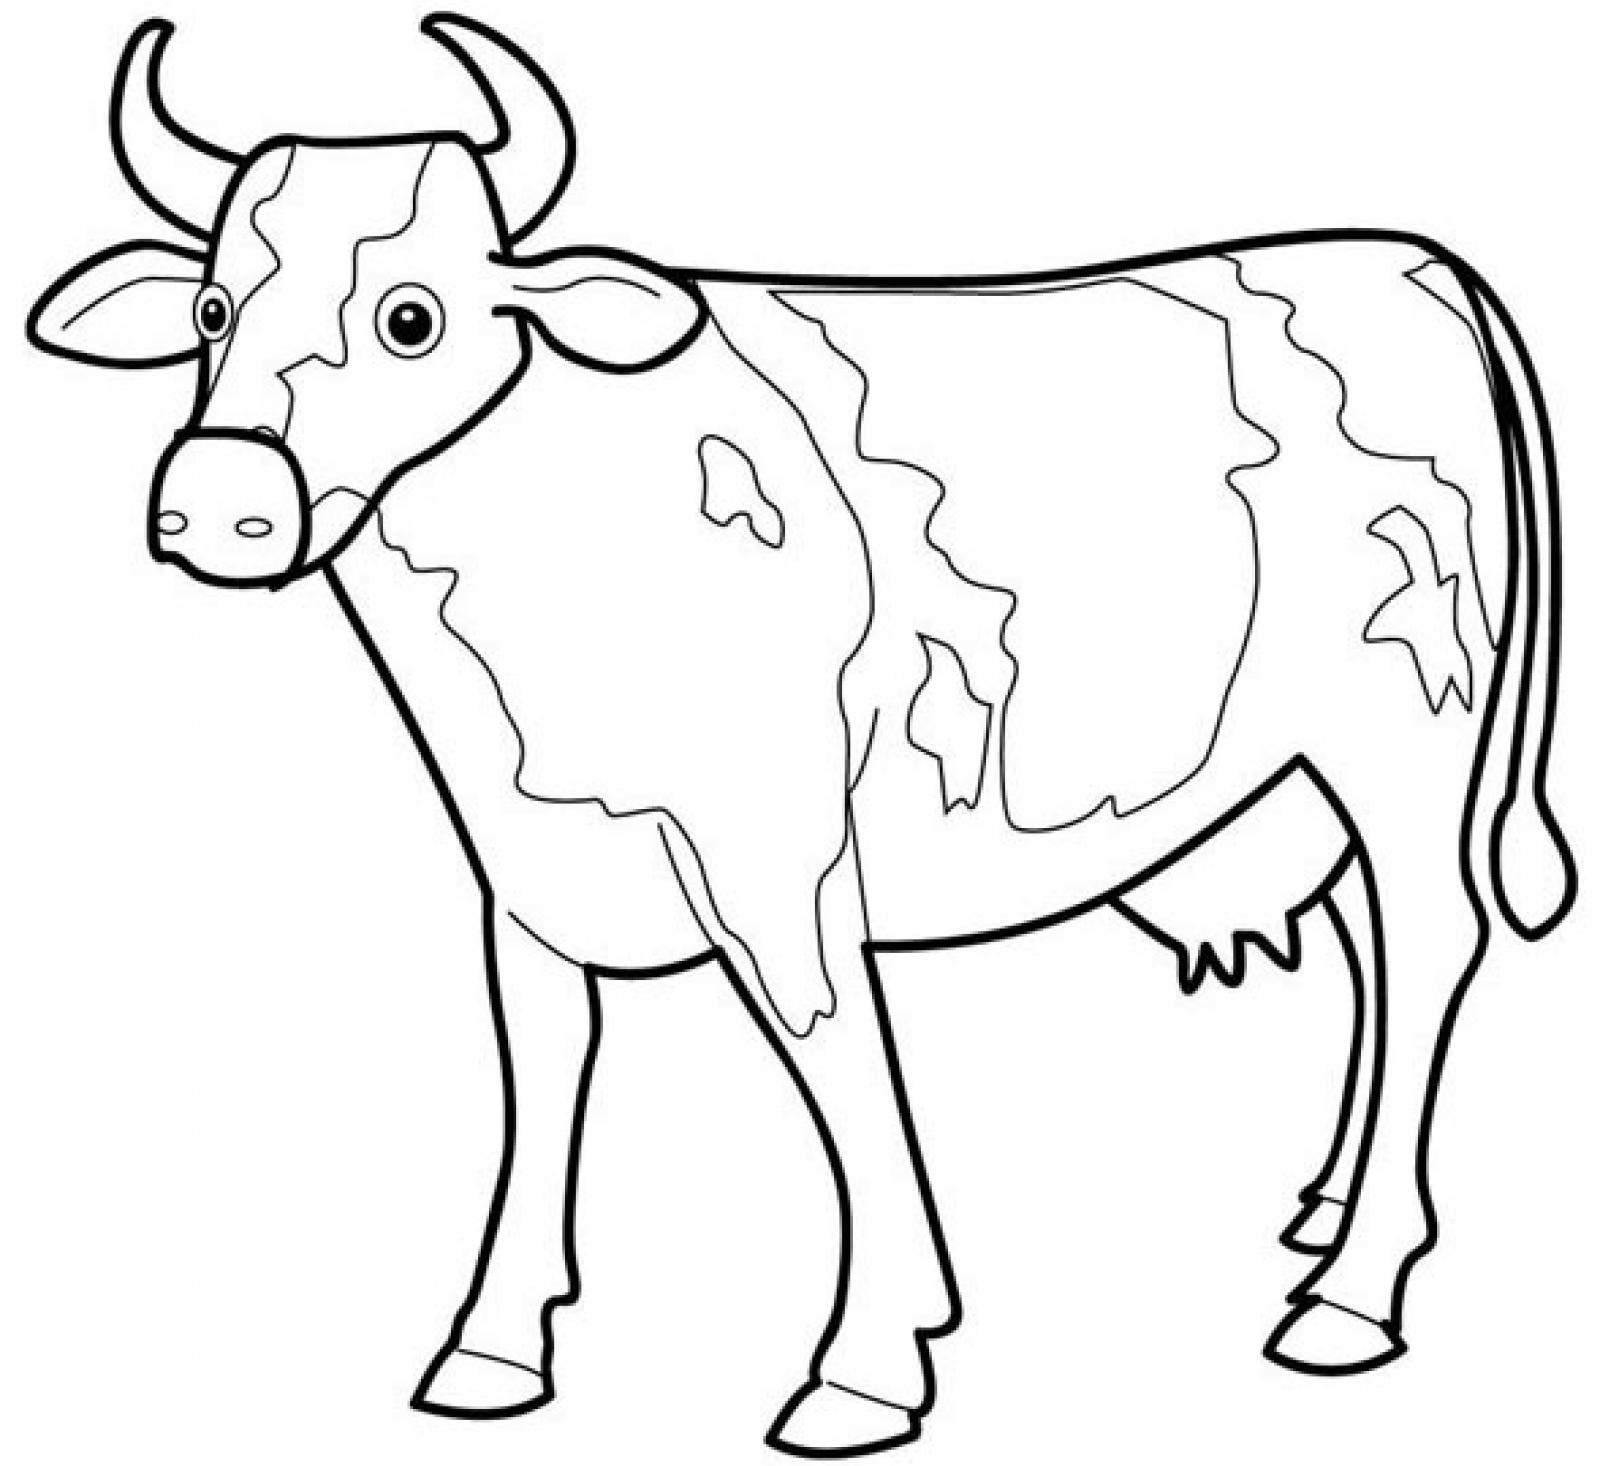 Printable Cow Coloring Pages Coloringme Com